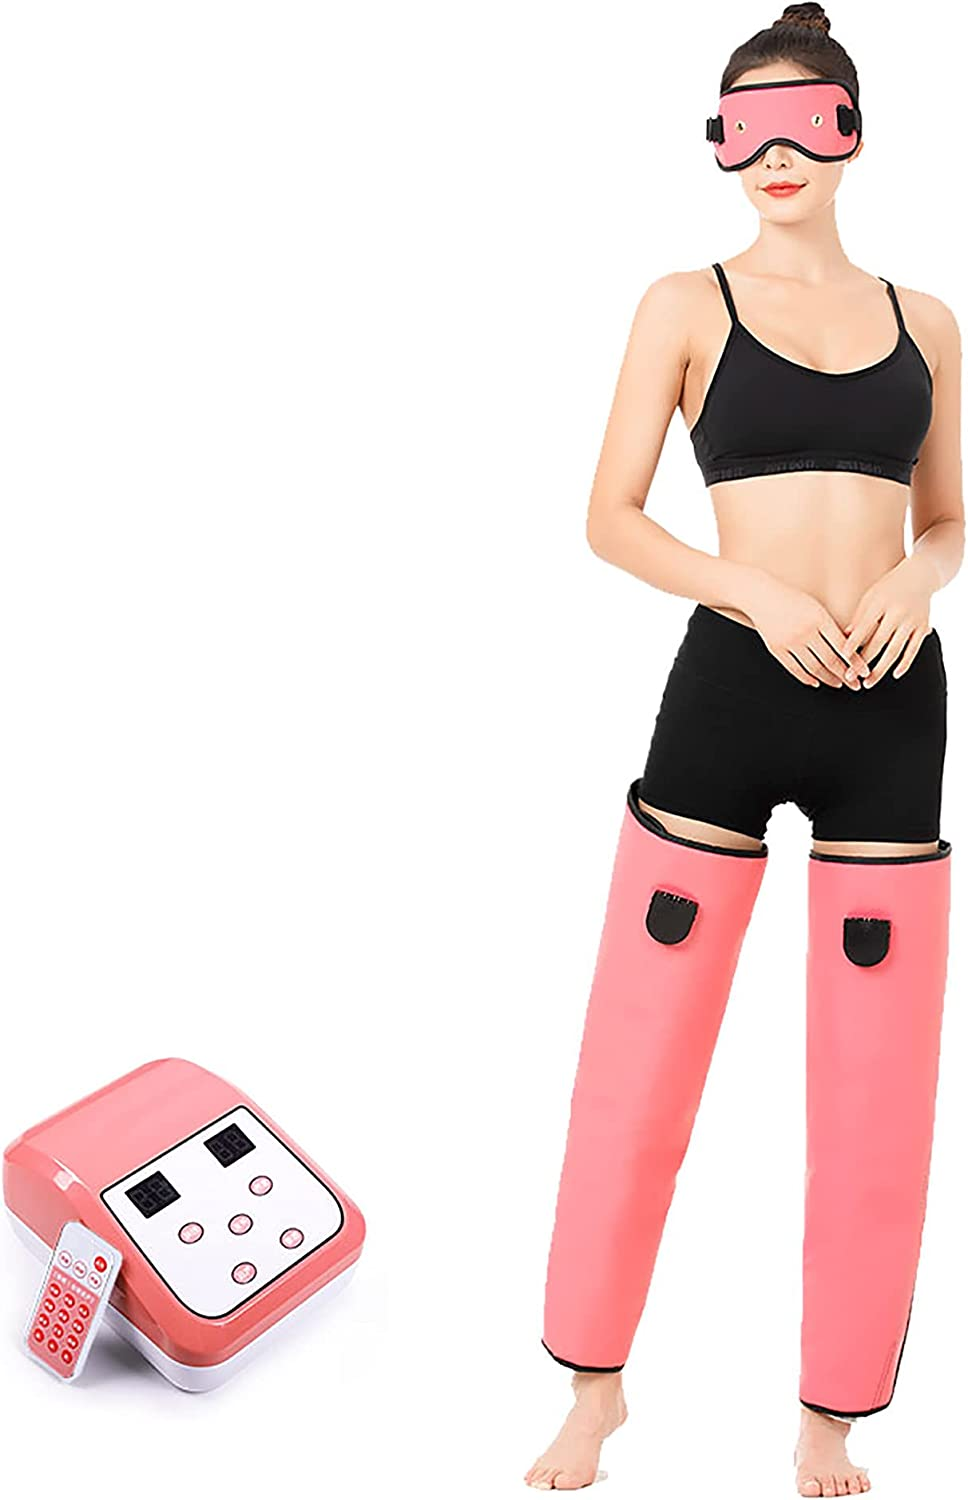 Portable Leg Massager Massage by Elec Lowest price challenge to Waves Calf Max 45% OFF Pressure